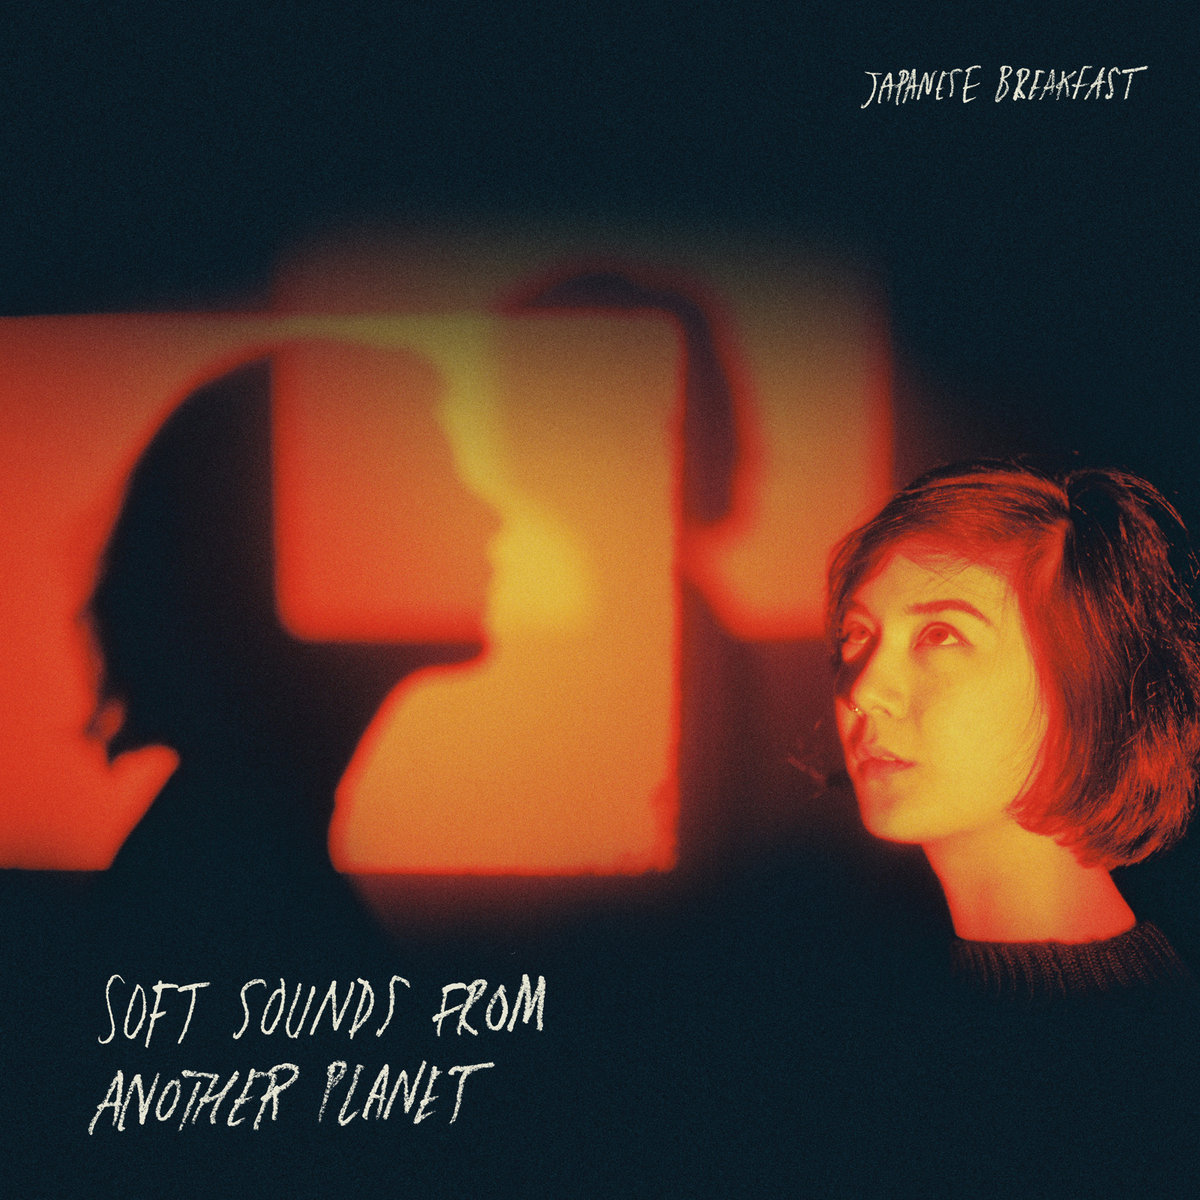 Image result for Japanese Breakfast - Soft Sounds From Another Planet